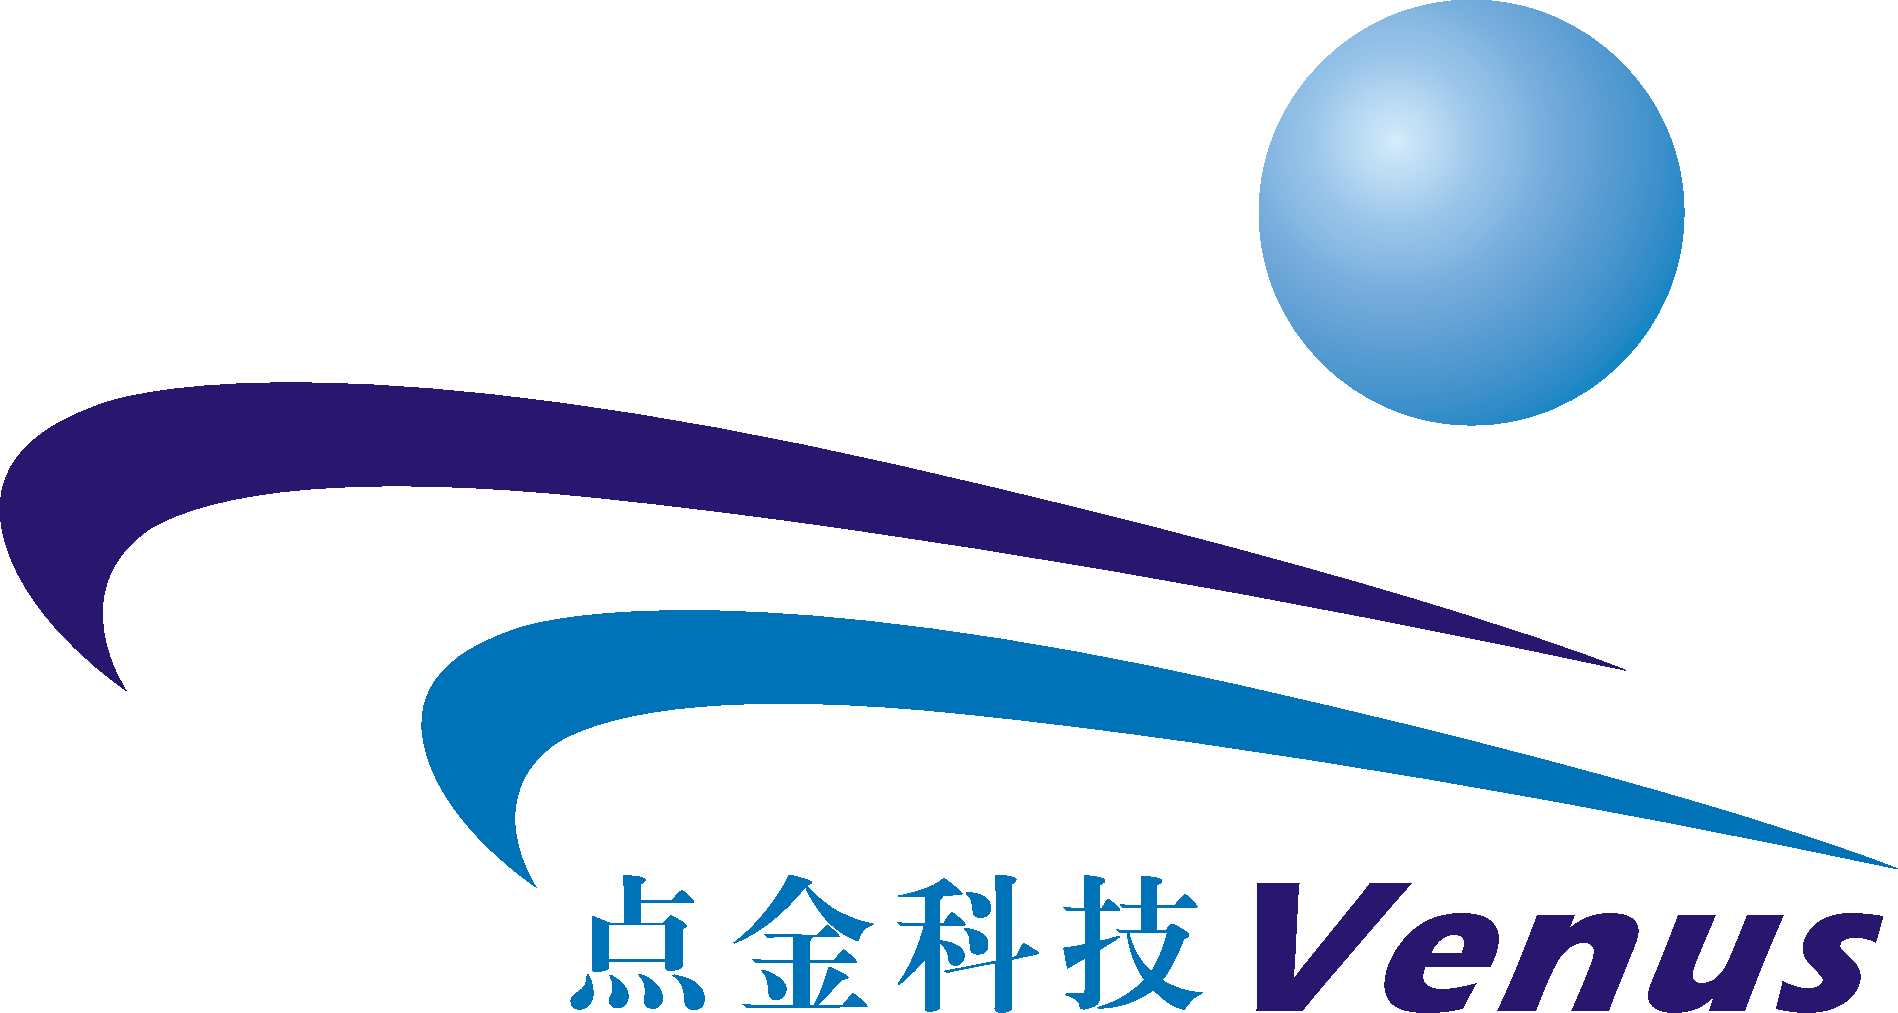 Venus Information Technology Co., Ltd.